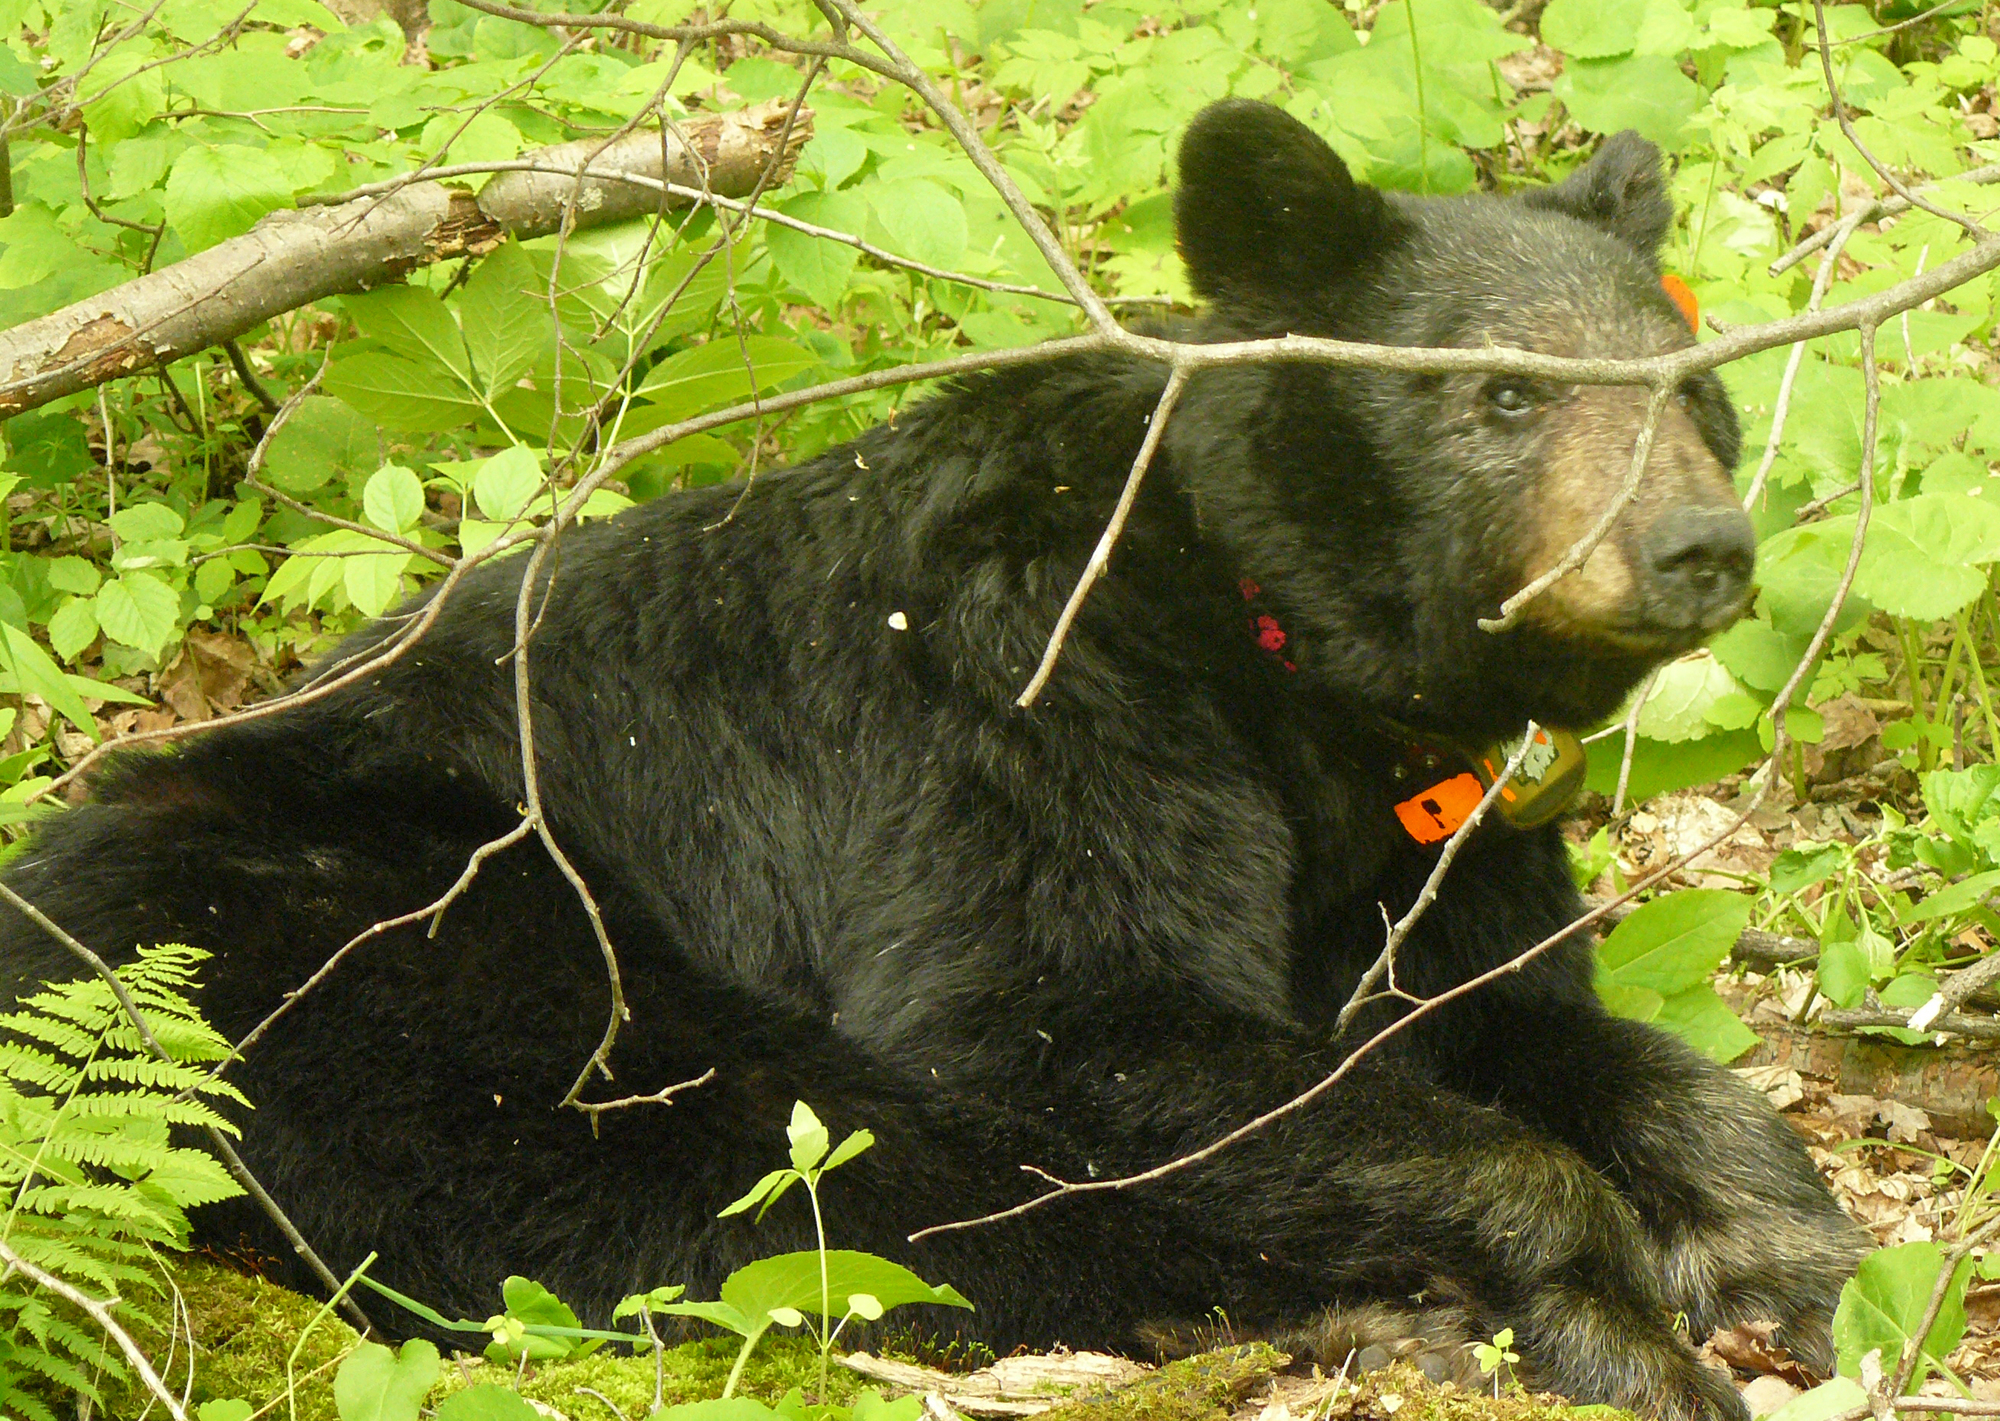 Our beloved Bear No. 56 hanging out in the woods. (pictured here wearing a radio collar, which the animal hardly notices once its on). Photo credit: MN DNR